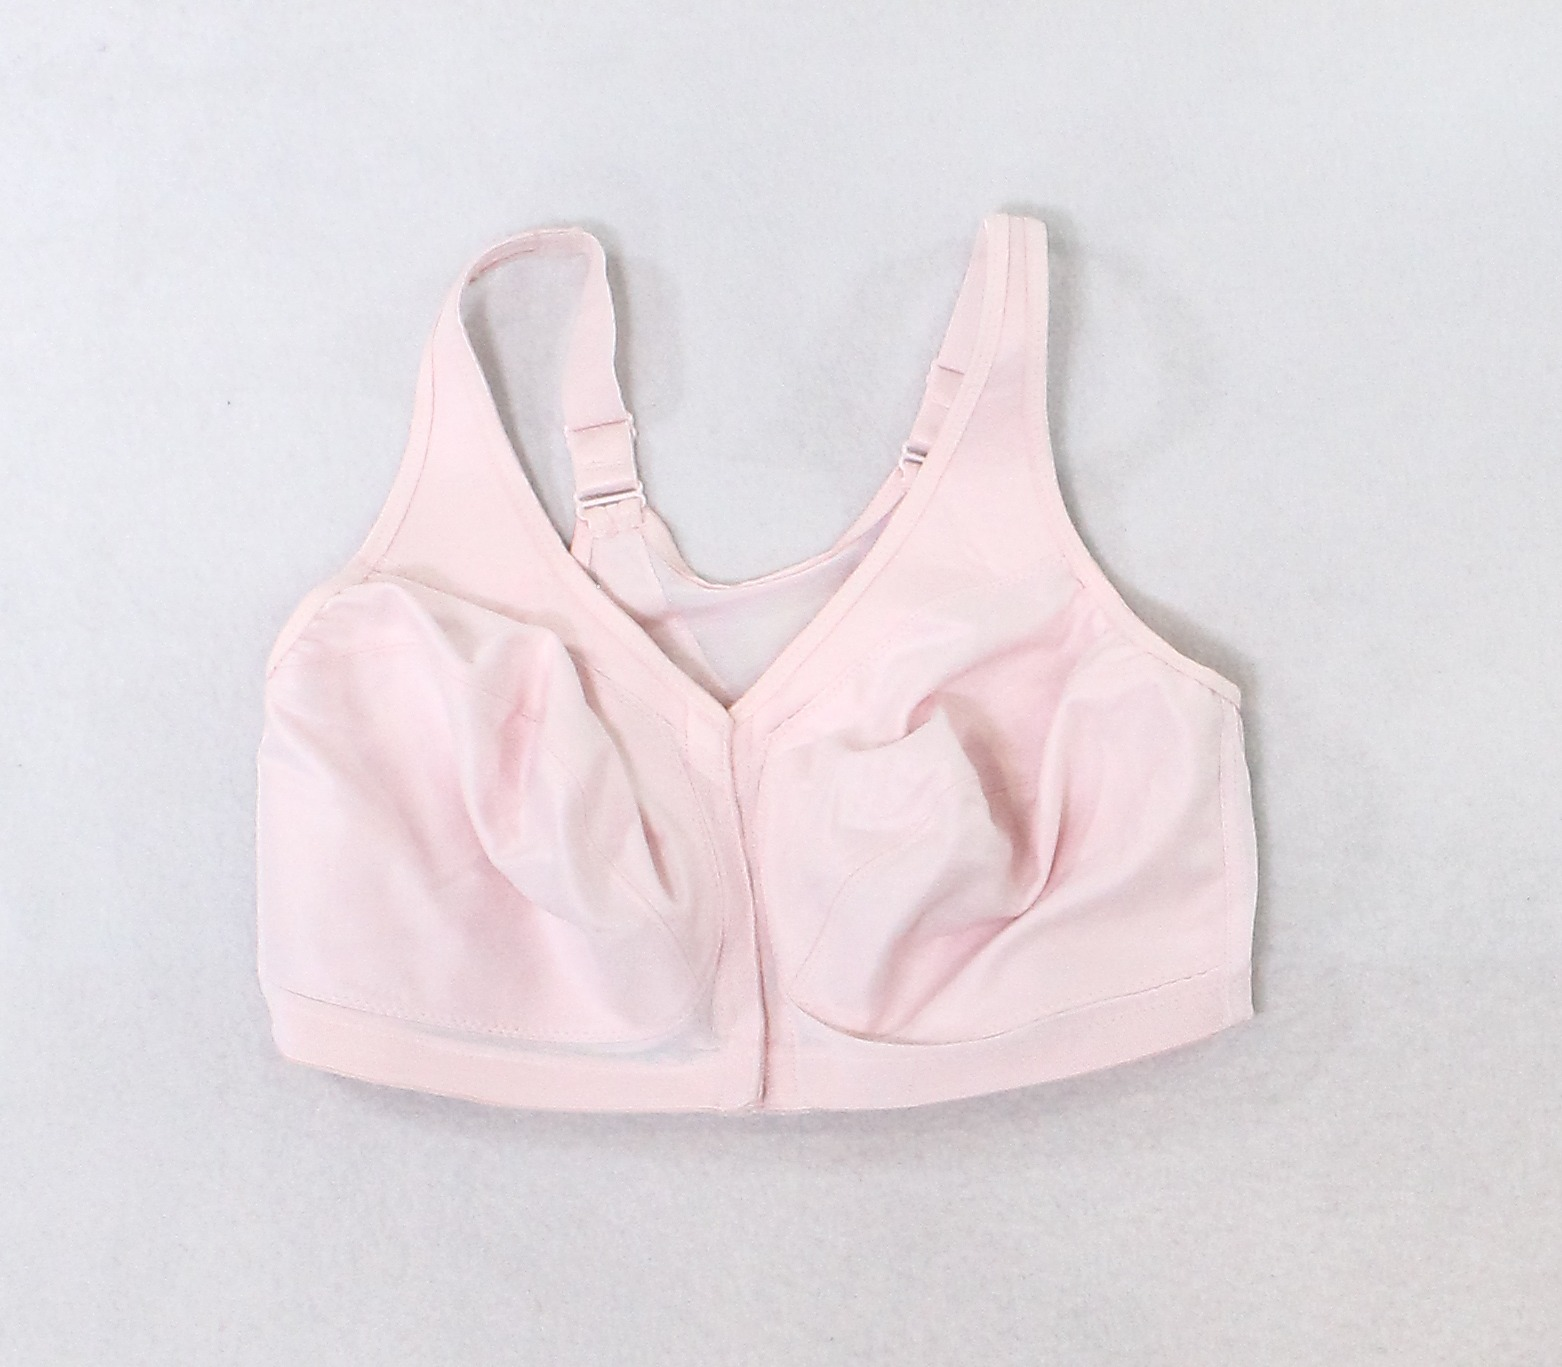 eb0d052e7f3 Details about Glamorise NEW Blush Pink Womens Size 36 F Hook + Eye  Mastectomy Bras  85 360